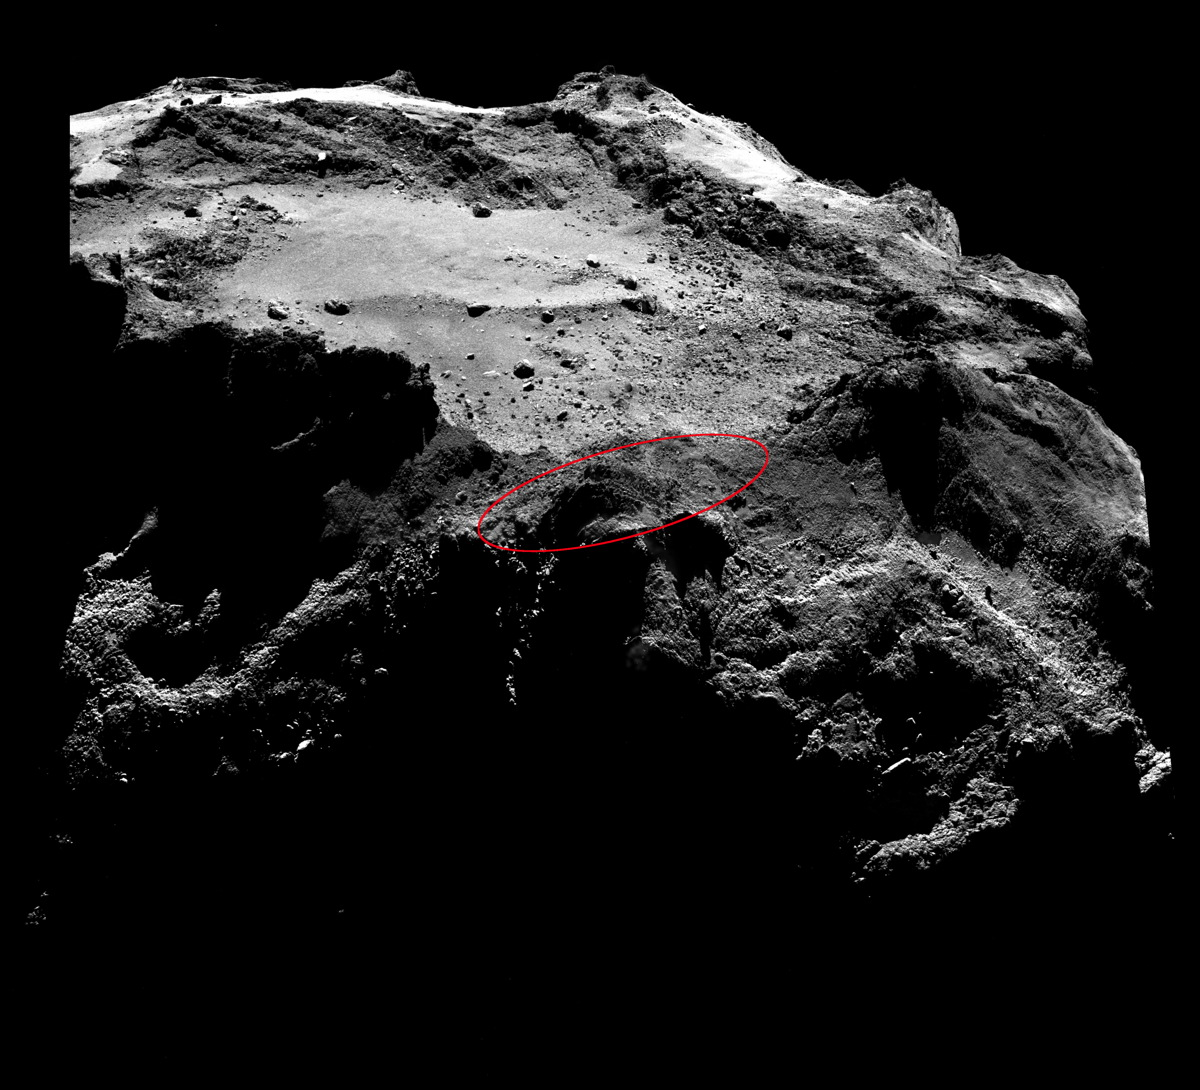 stable on philae comet lander - photo #27